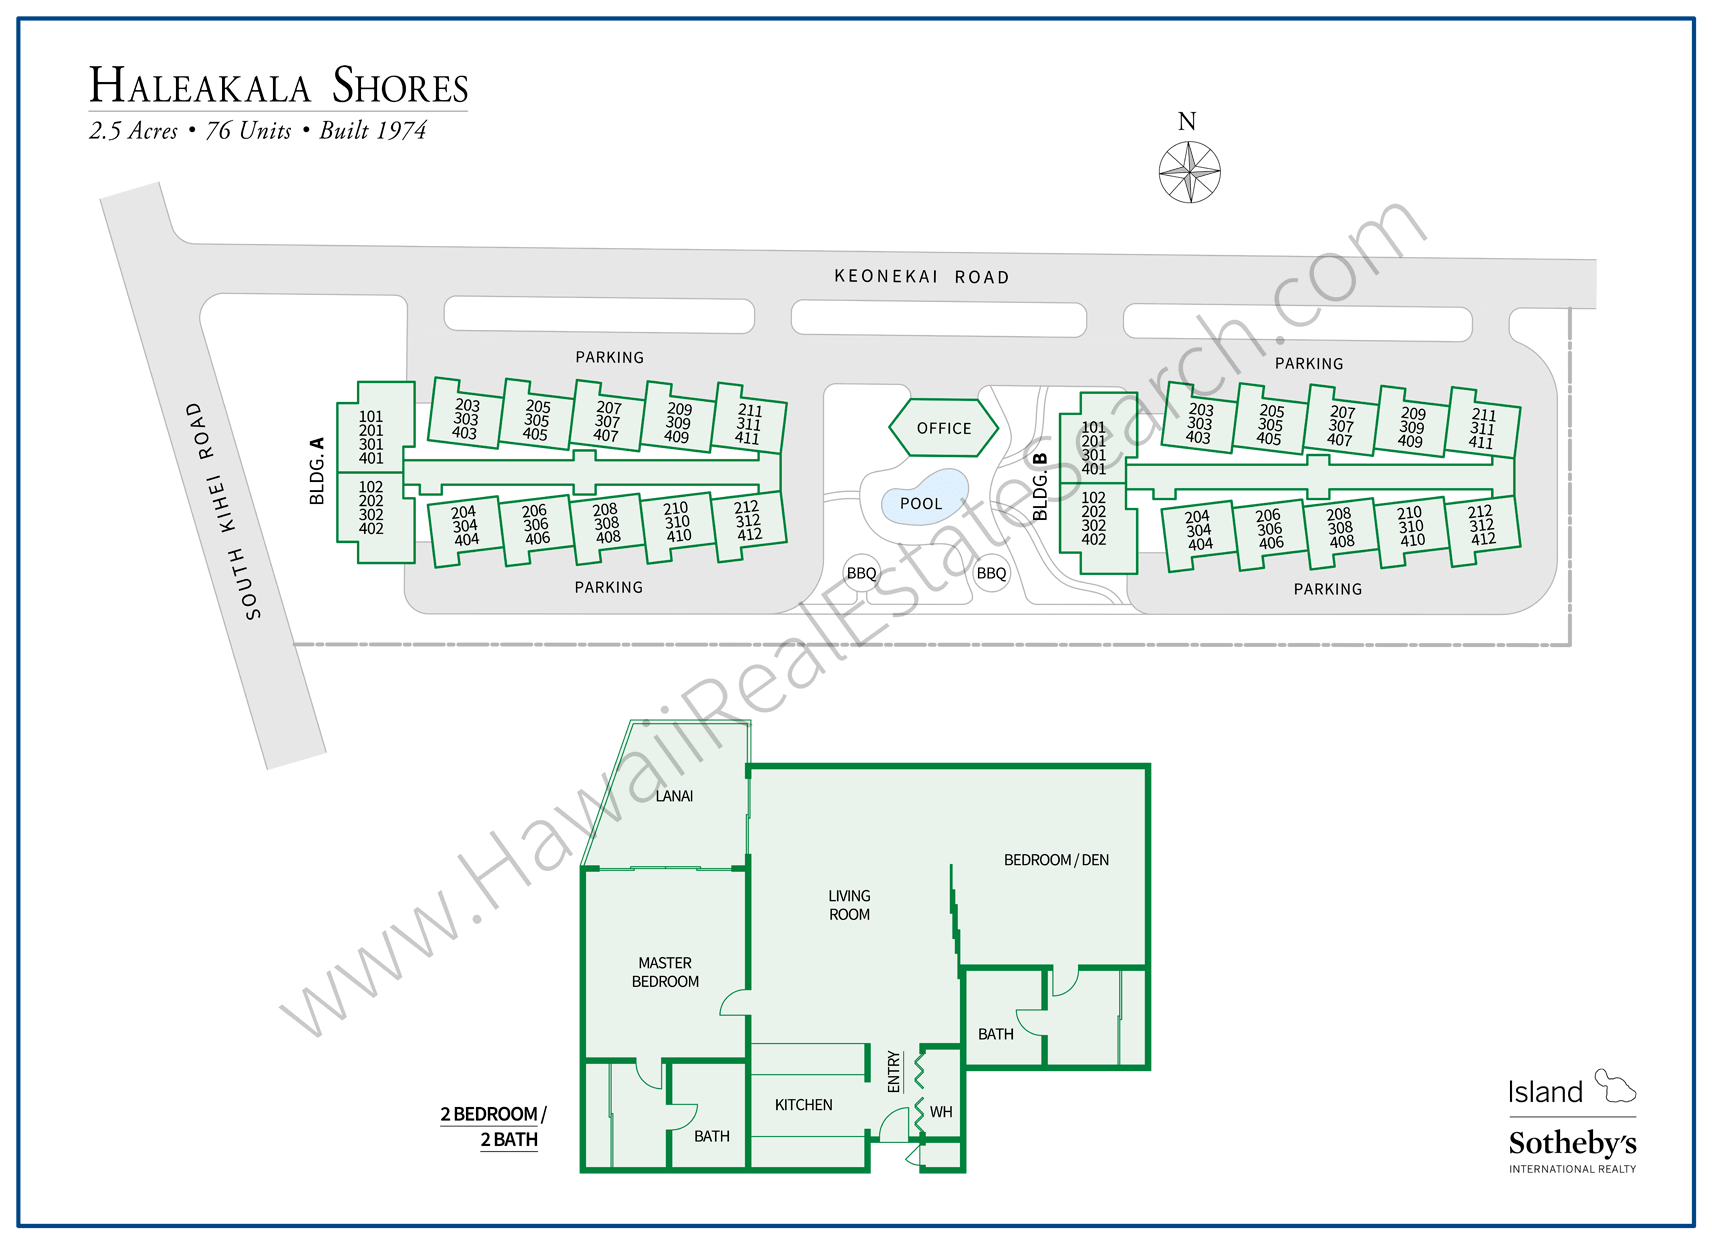 Haleakala Shores Property Map and Floor Plan